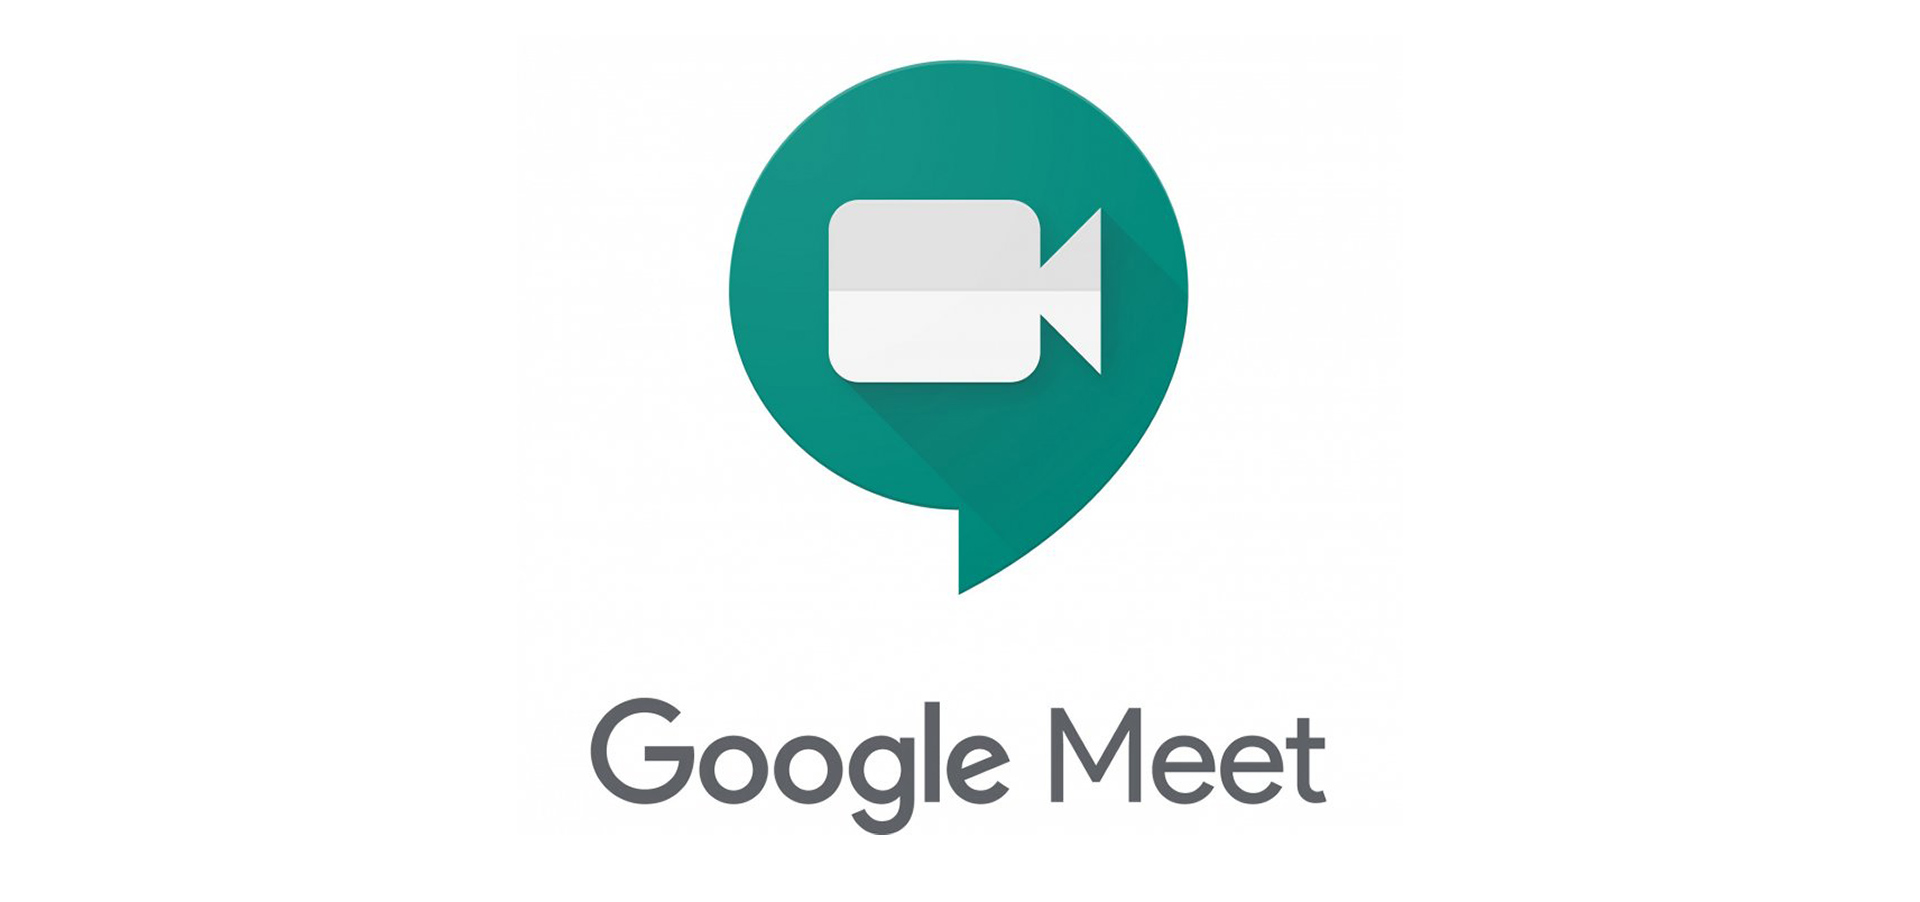 Video Meetings Made Easy - With BLAB and Google Meet